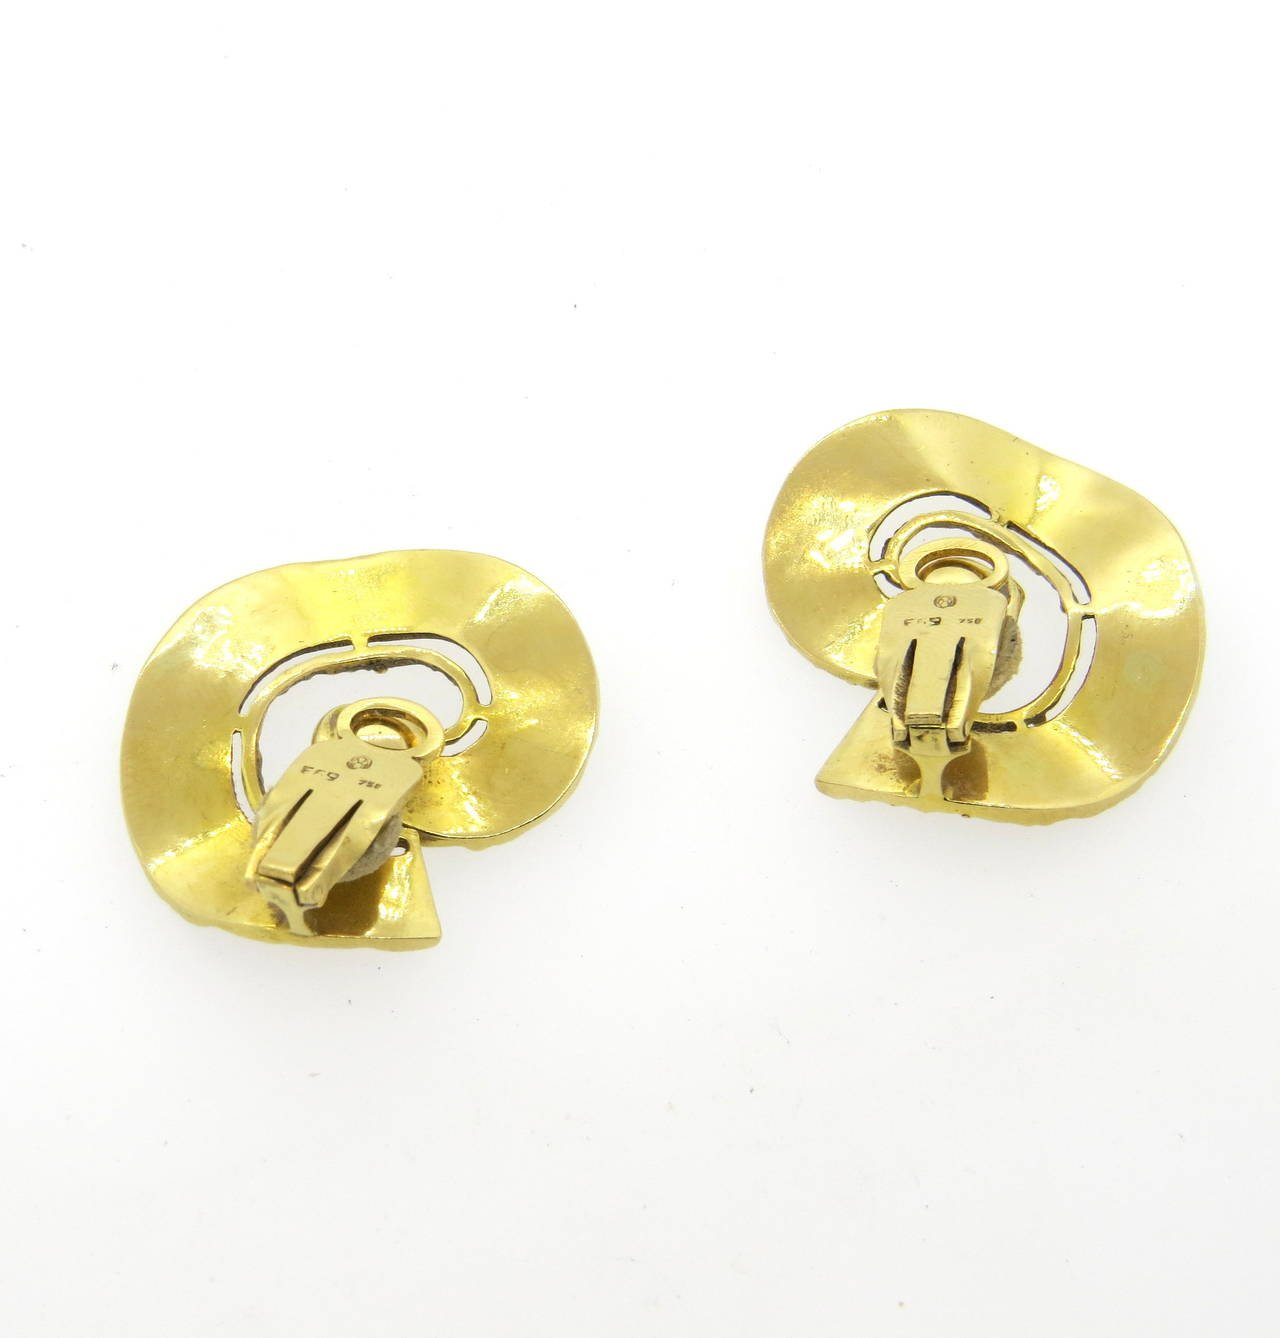 1970s Ilias Lalaounis Gold Swirl Earrings - UPONPARK